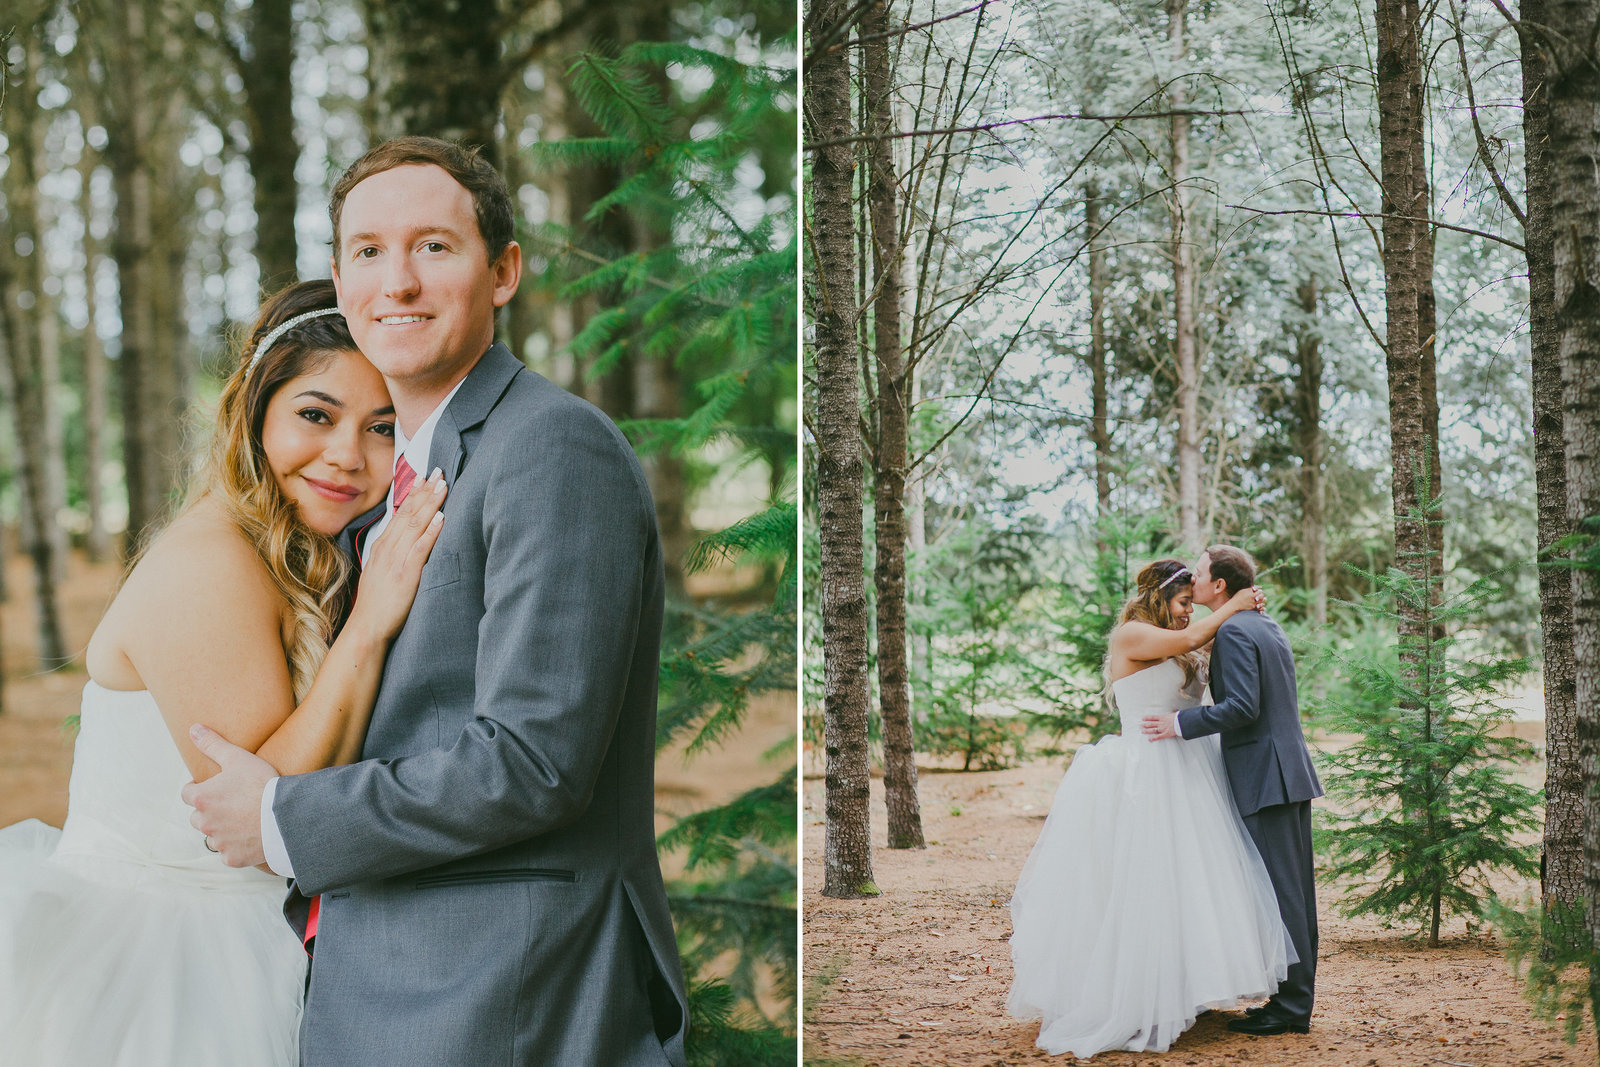 Romantic wedding photos of bride and groom in the woods in Salem, Oregon | Susie Moreno Photography